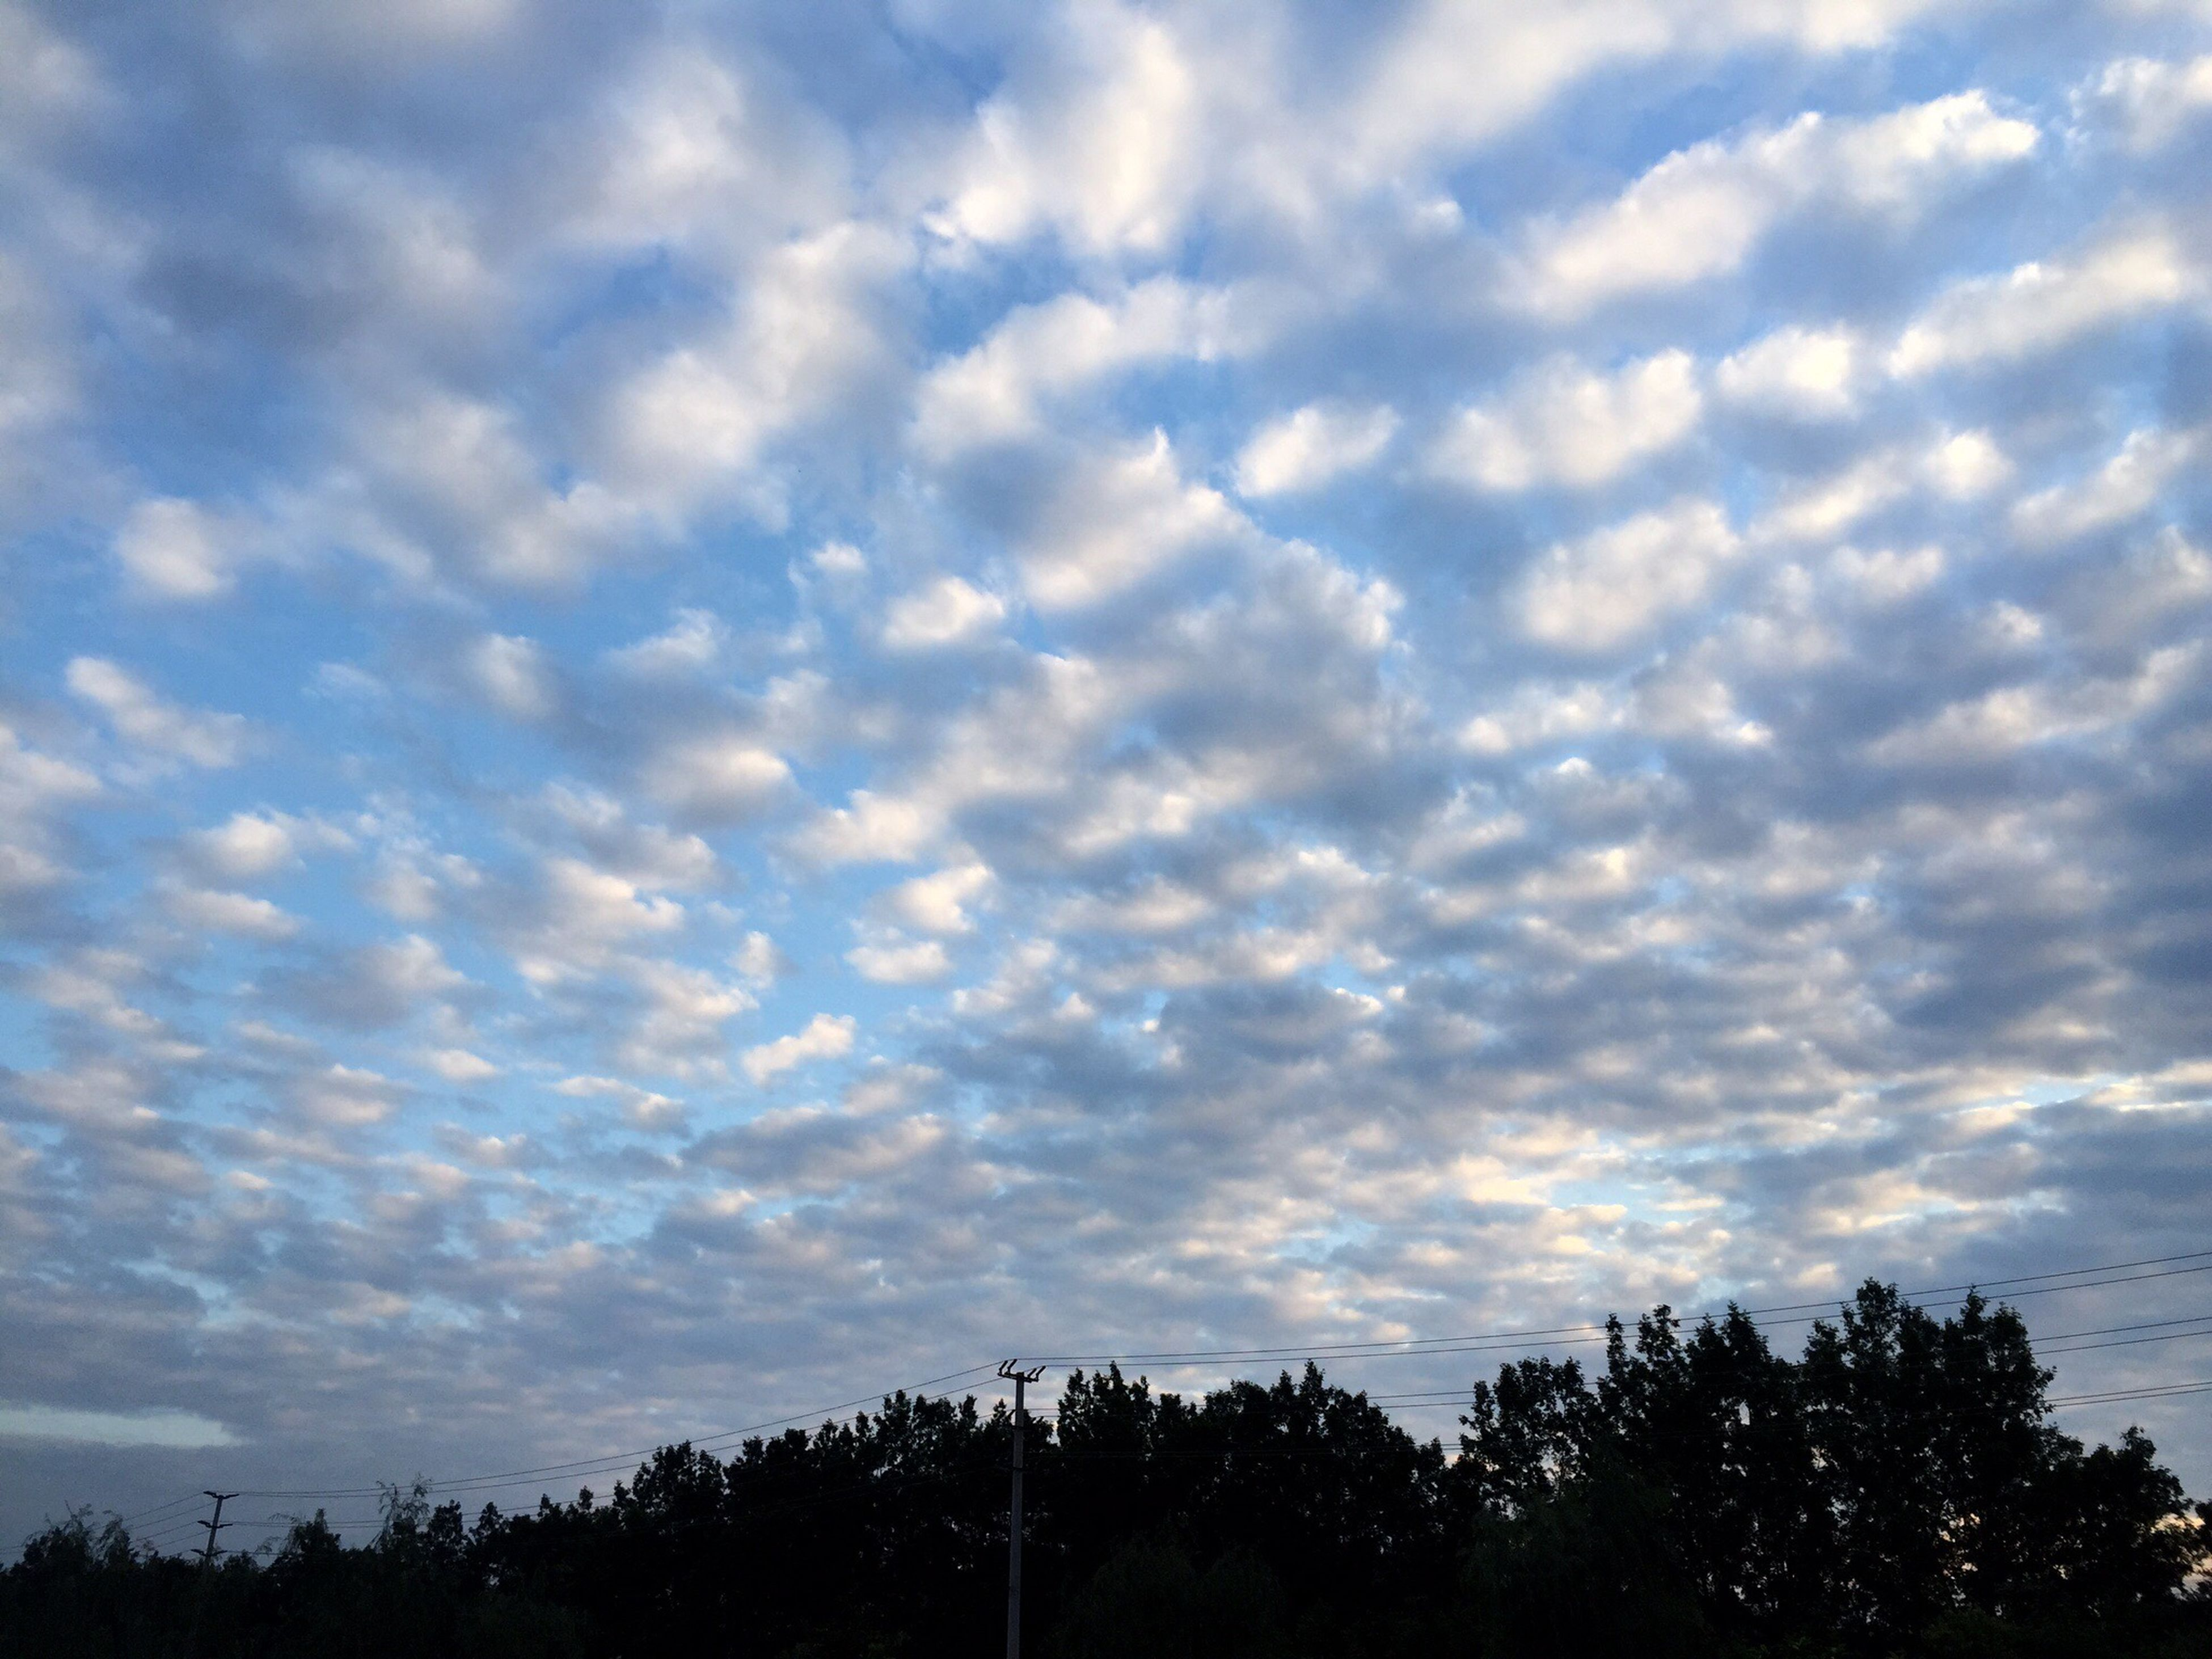 sky, tree, cloud - sky, low angle view, silhouette, tranquility, cloudy, beauty in nature, scenics, tranquil scene, nature, cloud, weather, overcast, idyllic, growth, cloudscape, dramatic sky, outdoors, no people